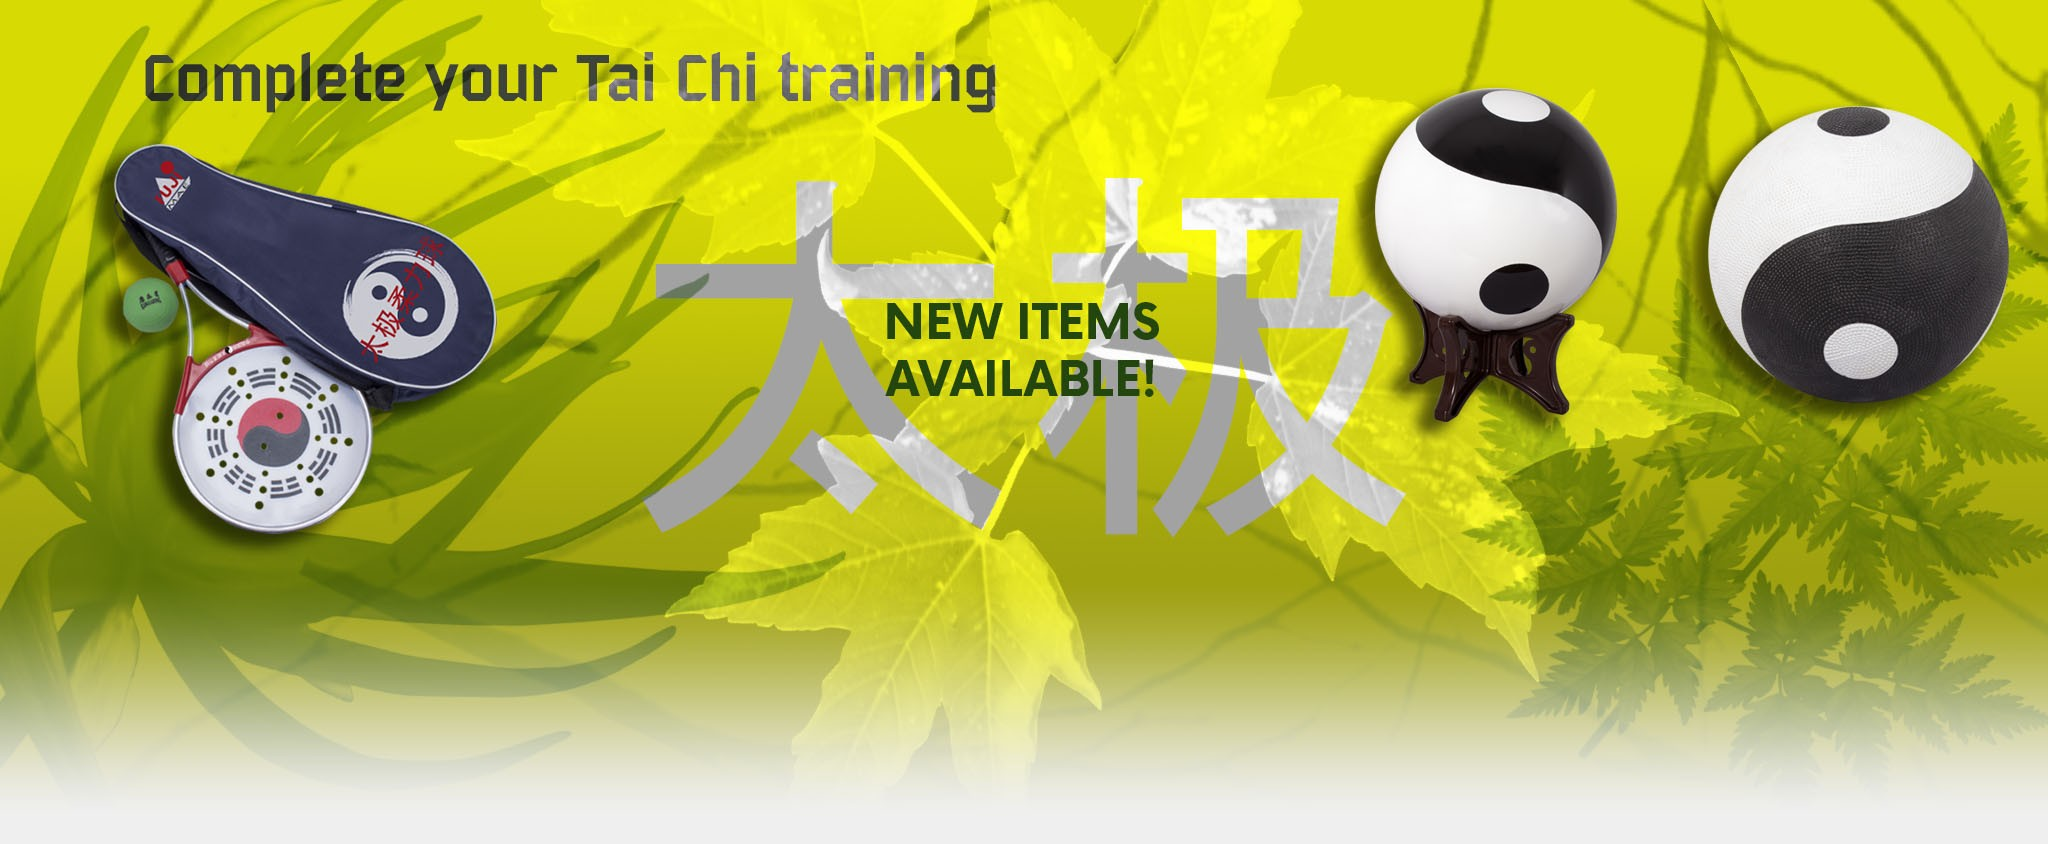 Tai Chi new products